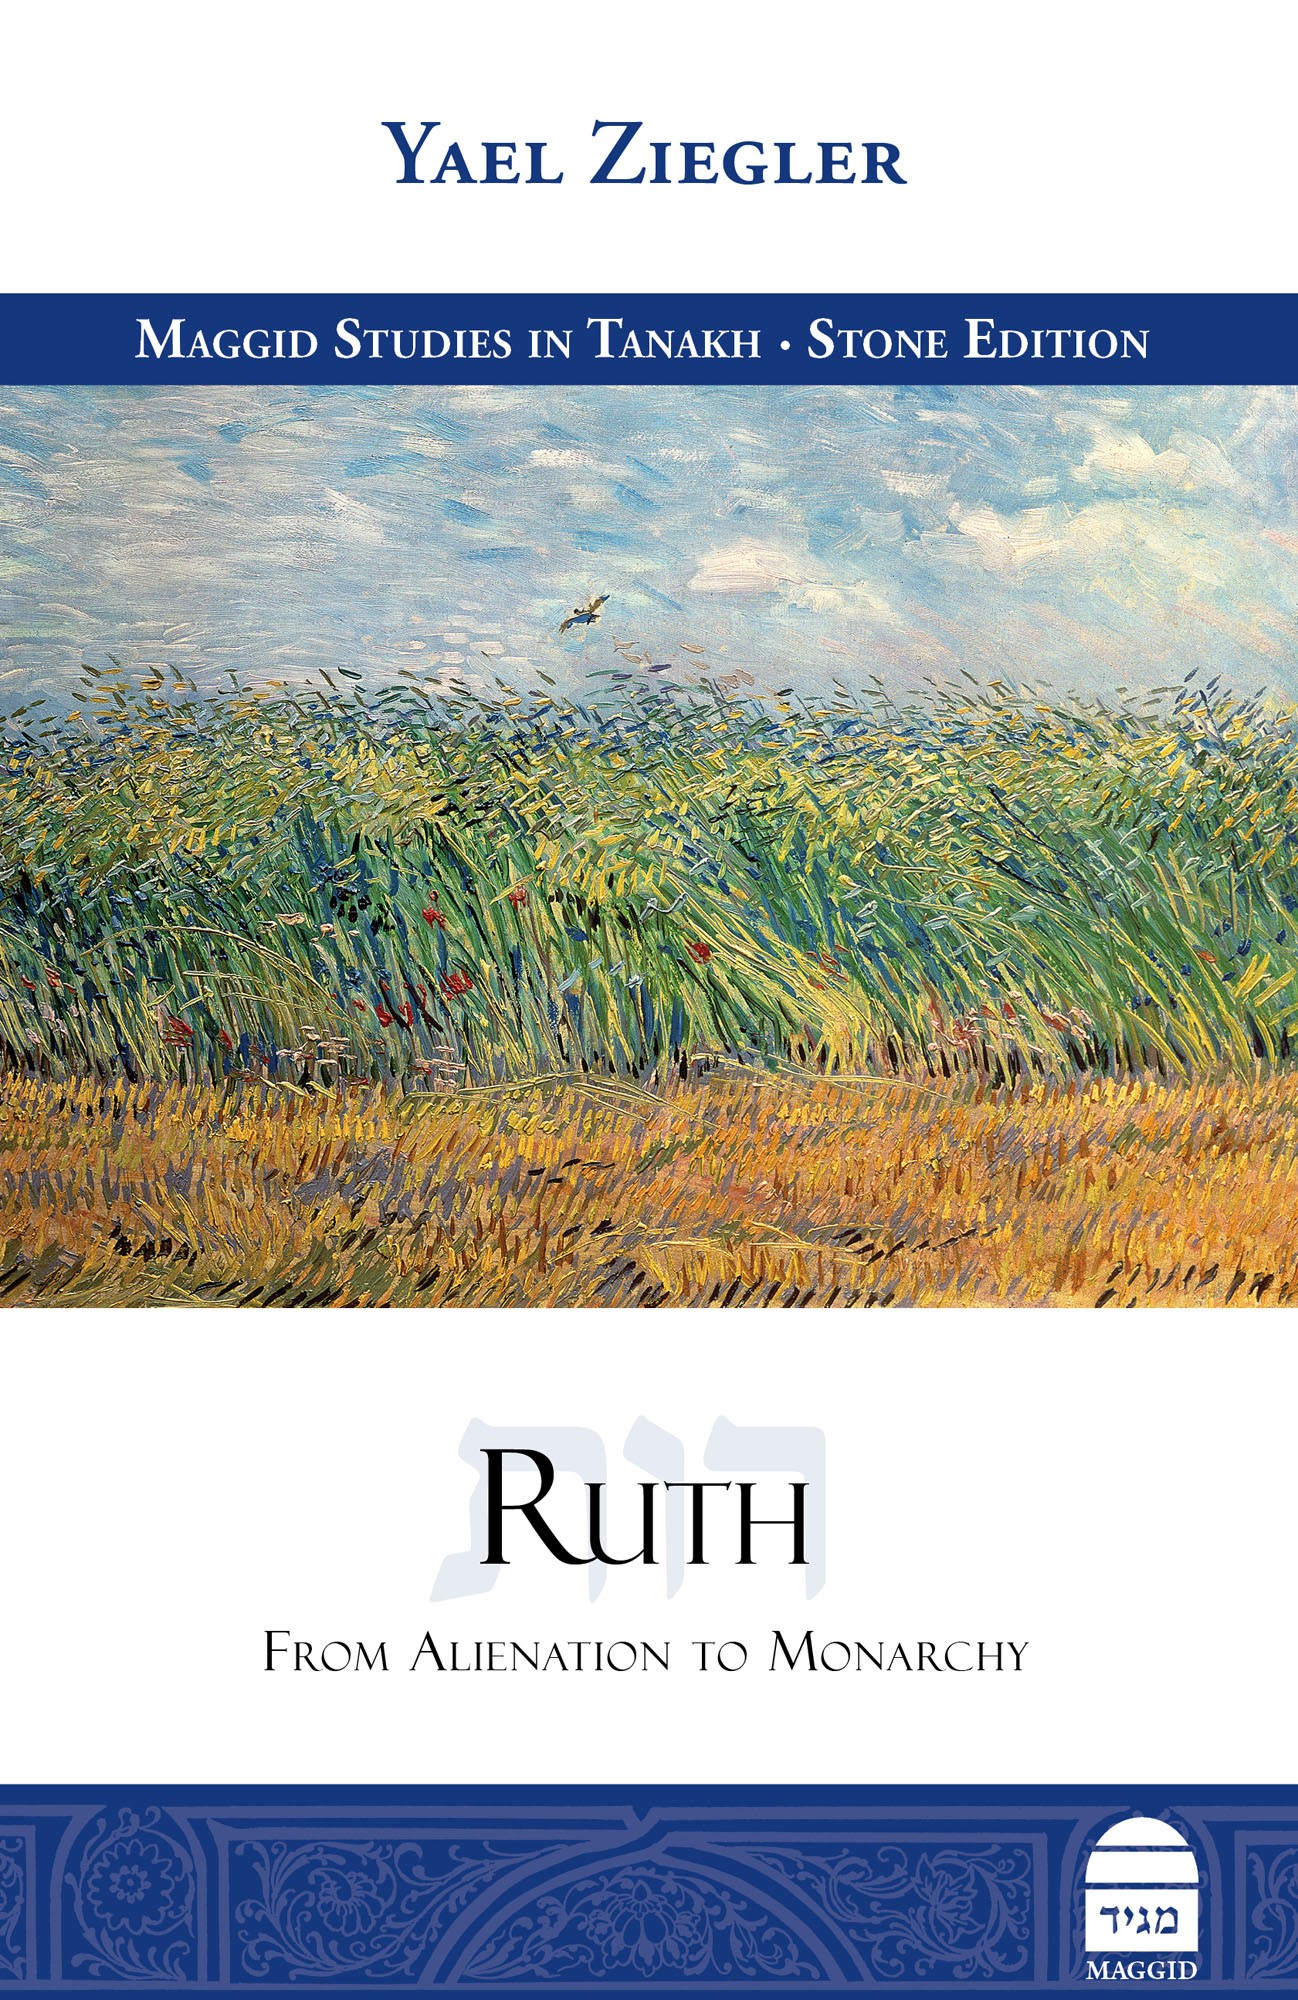 Ruth: From Alienation to Monarchy